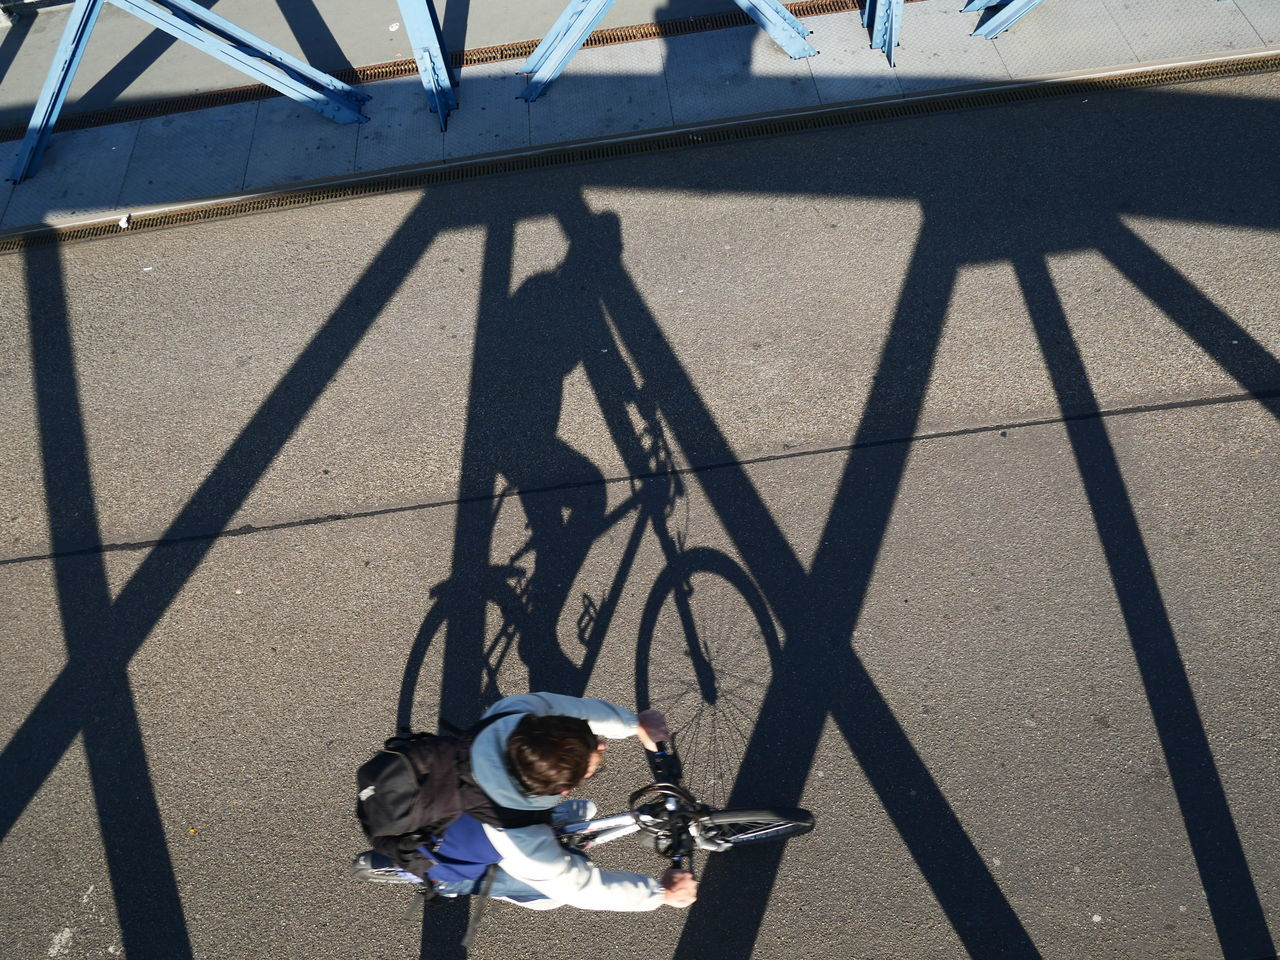 Adult Bycicle Childhood Cycling Cyclist Day High Angle View Leisure Activity Lifestyles One Person Outdoors People Real People Shadow Sunlight